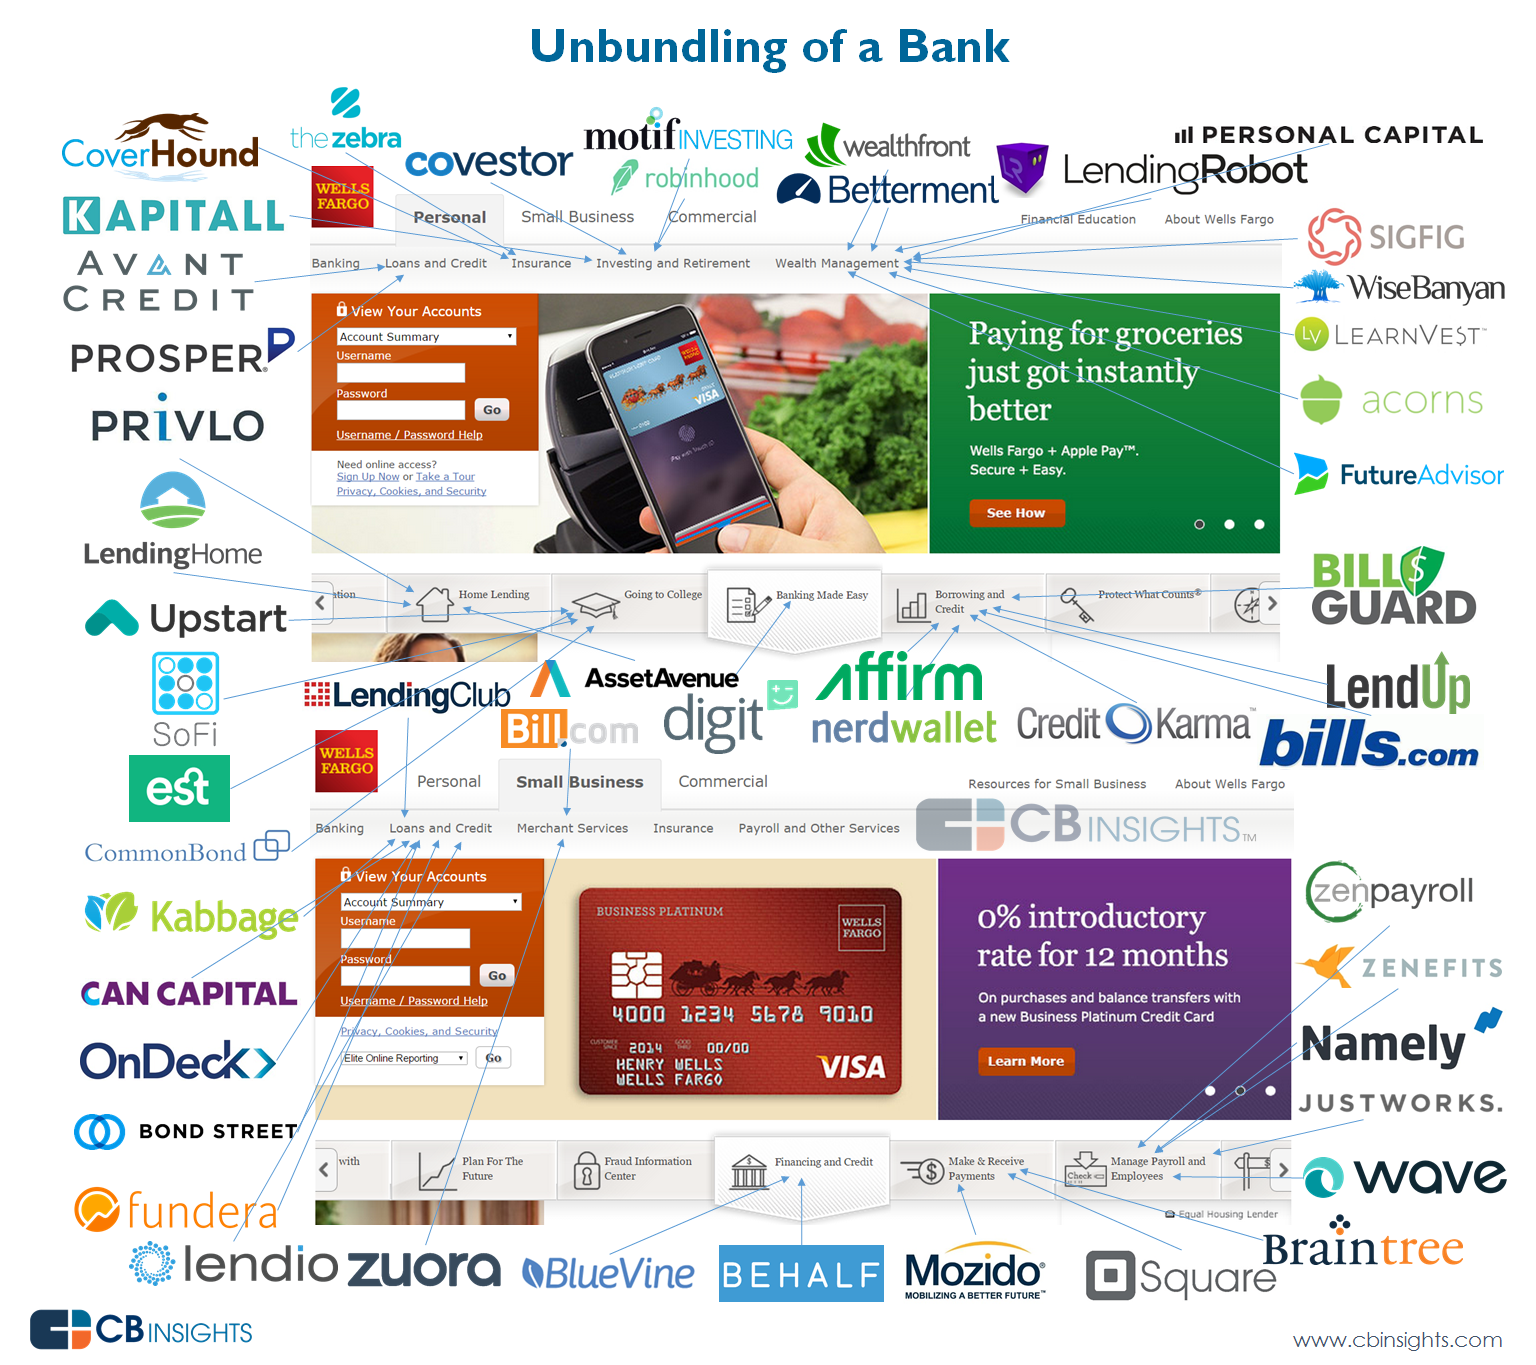 The Fintech Startups That Are Unbundling Big Banks